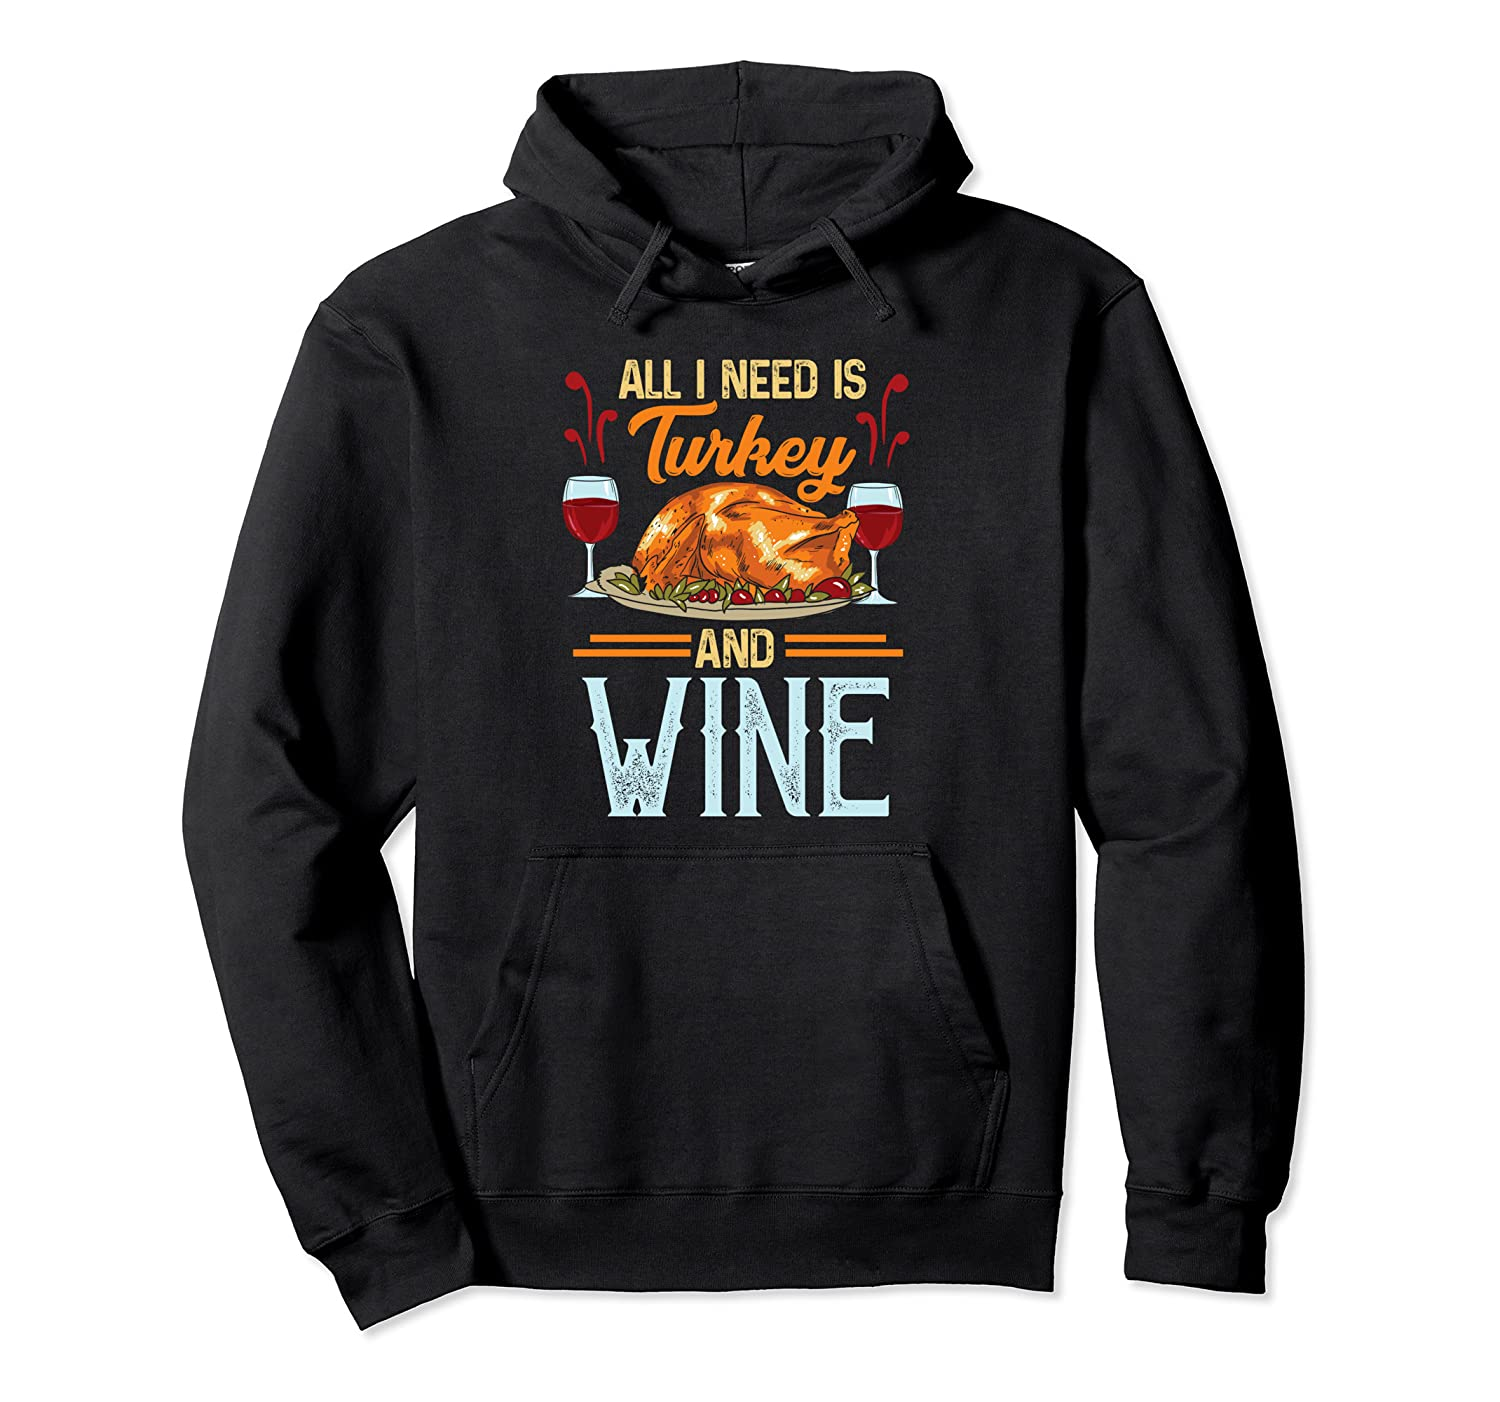 All I Need Is Turkey And Wine Funny Happy Thanksgiving Pullover Hoodie